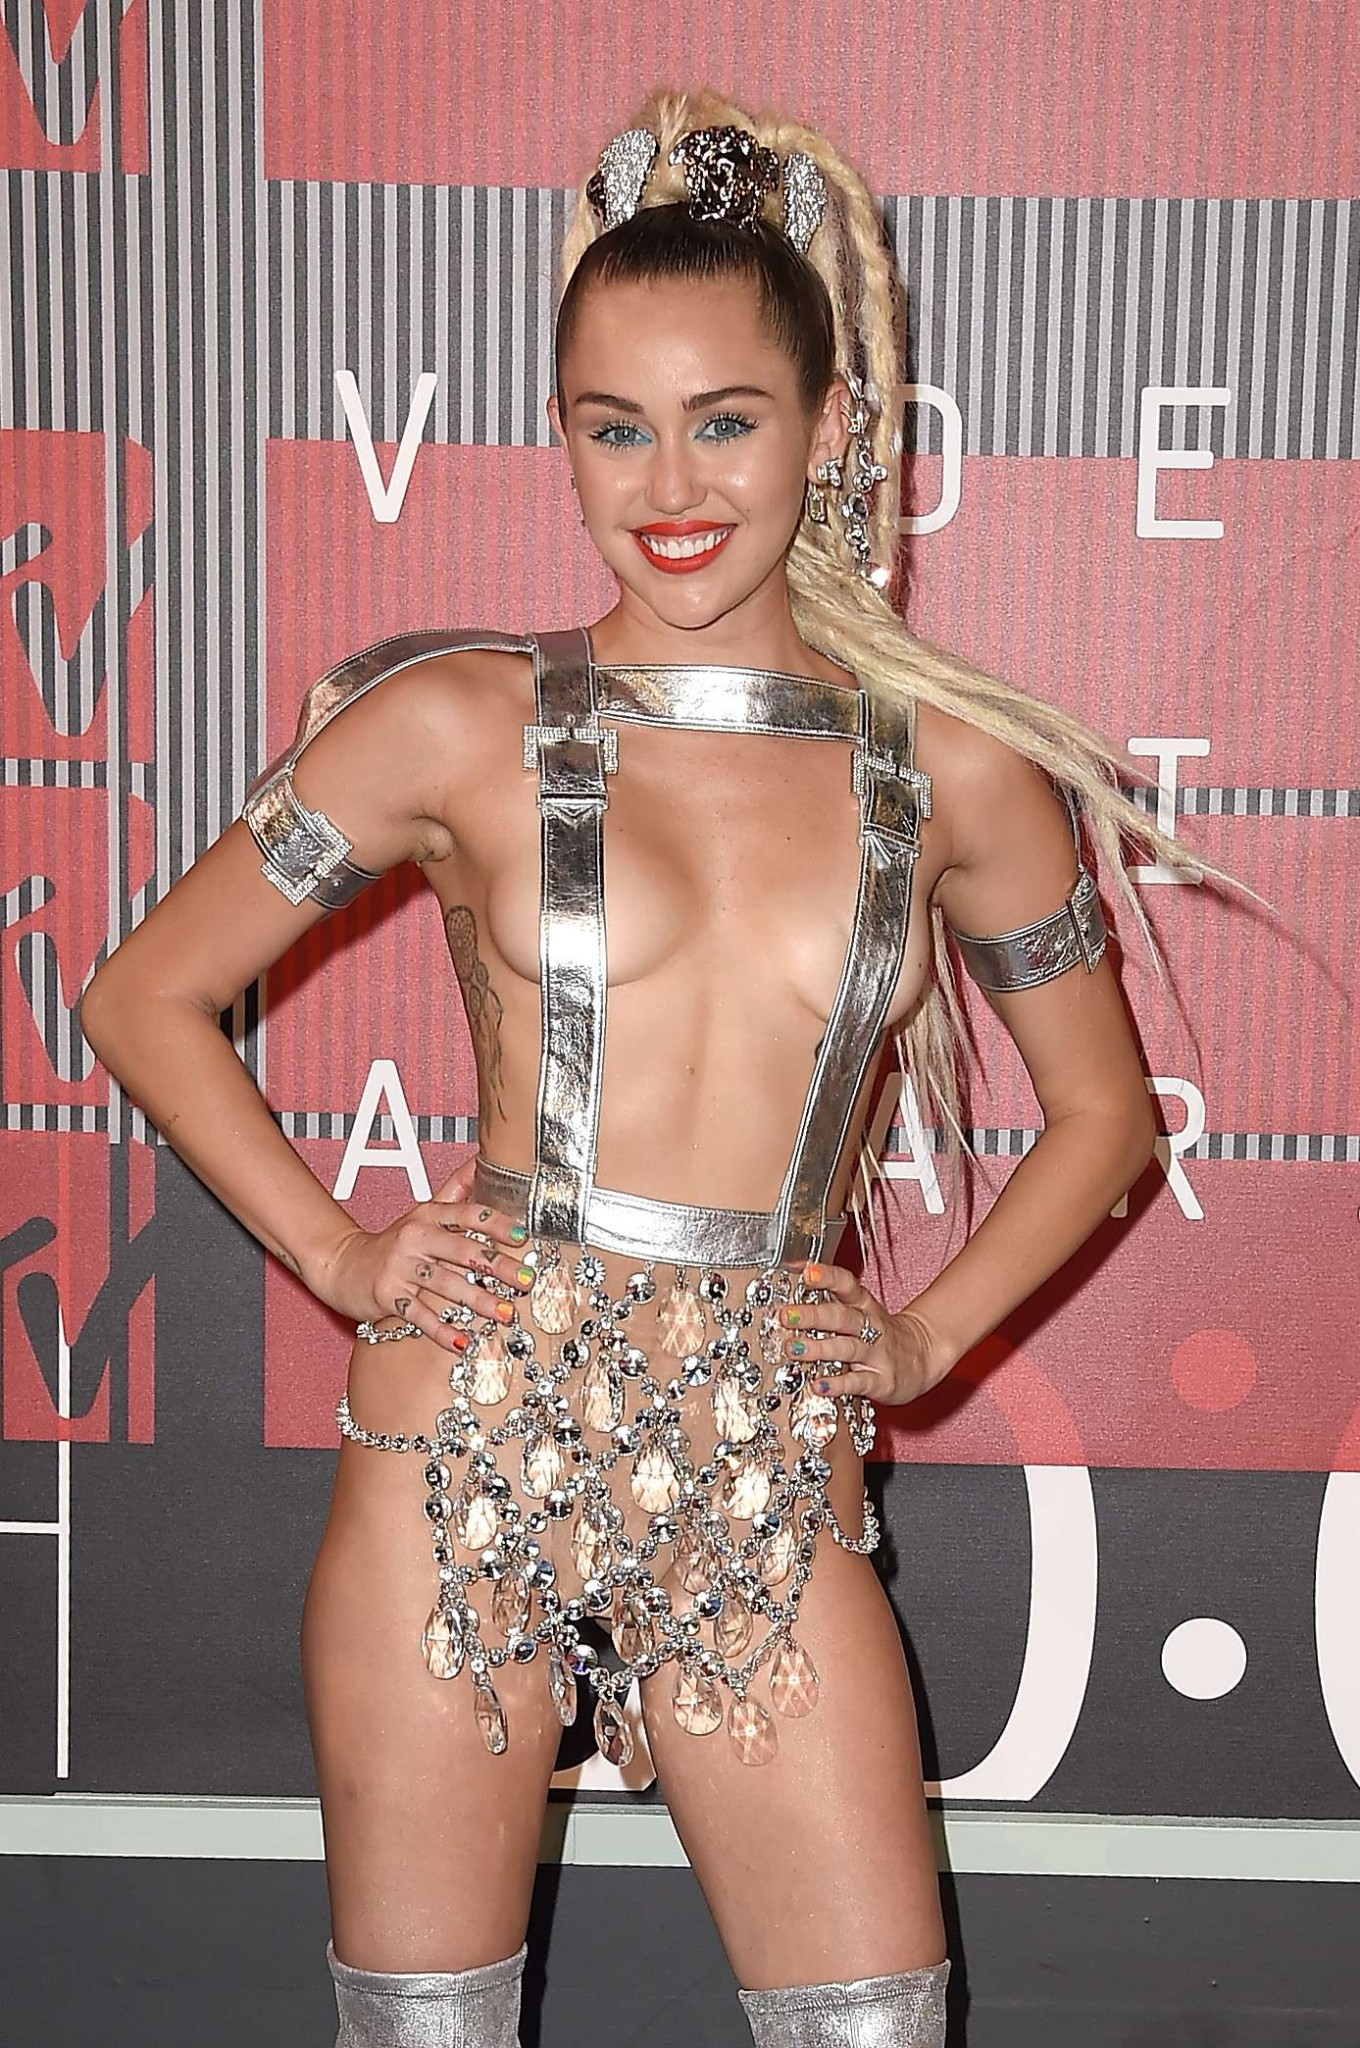 miley-cyrus-thong-ass-flash-half-naked-mtv-video-music-awards-2015-43